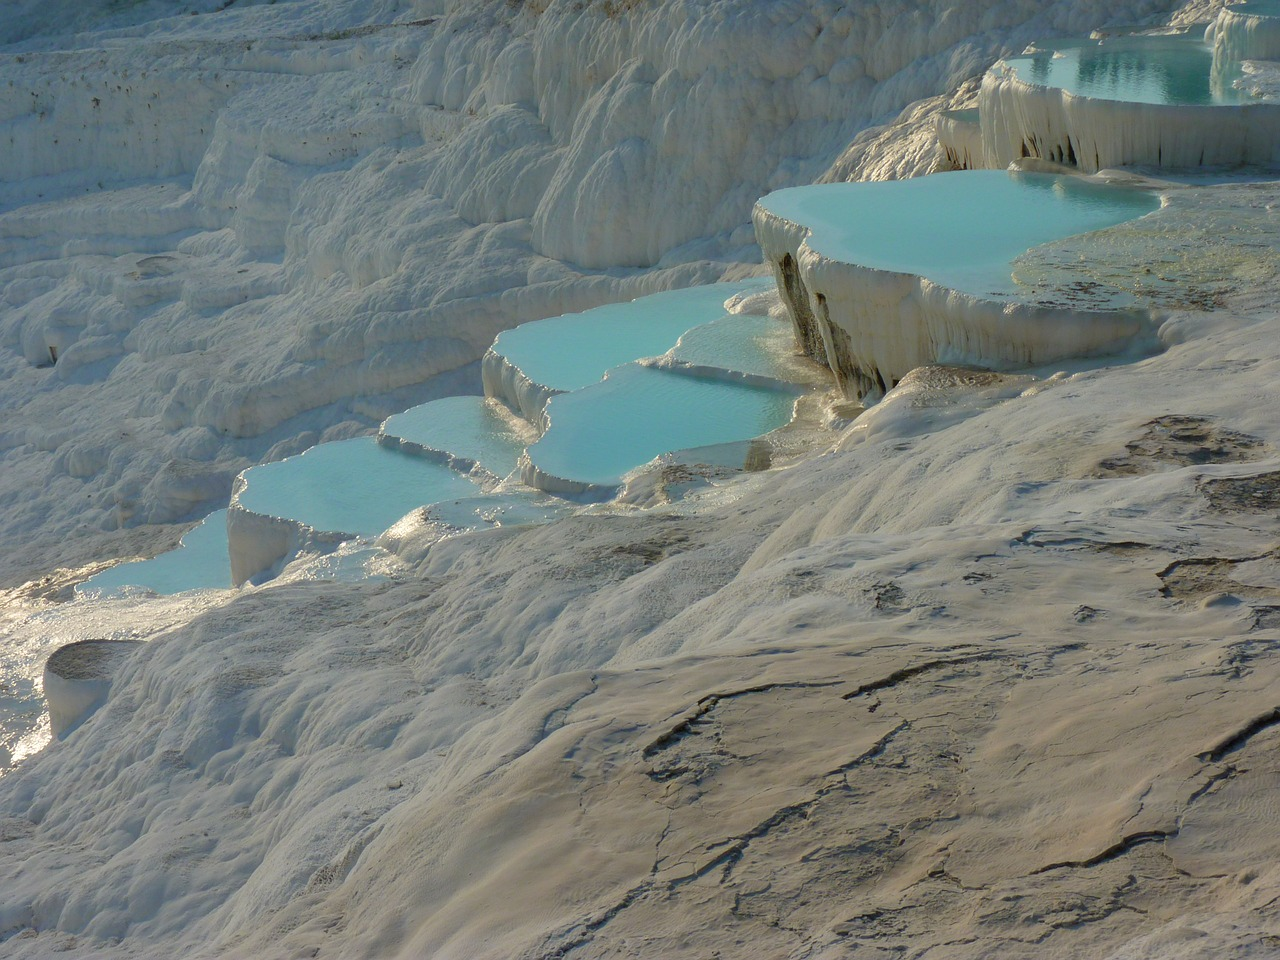 pamukkale lime sinter terrace calcium free photo